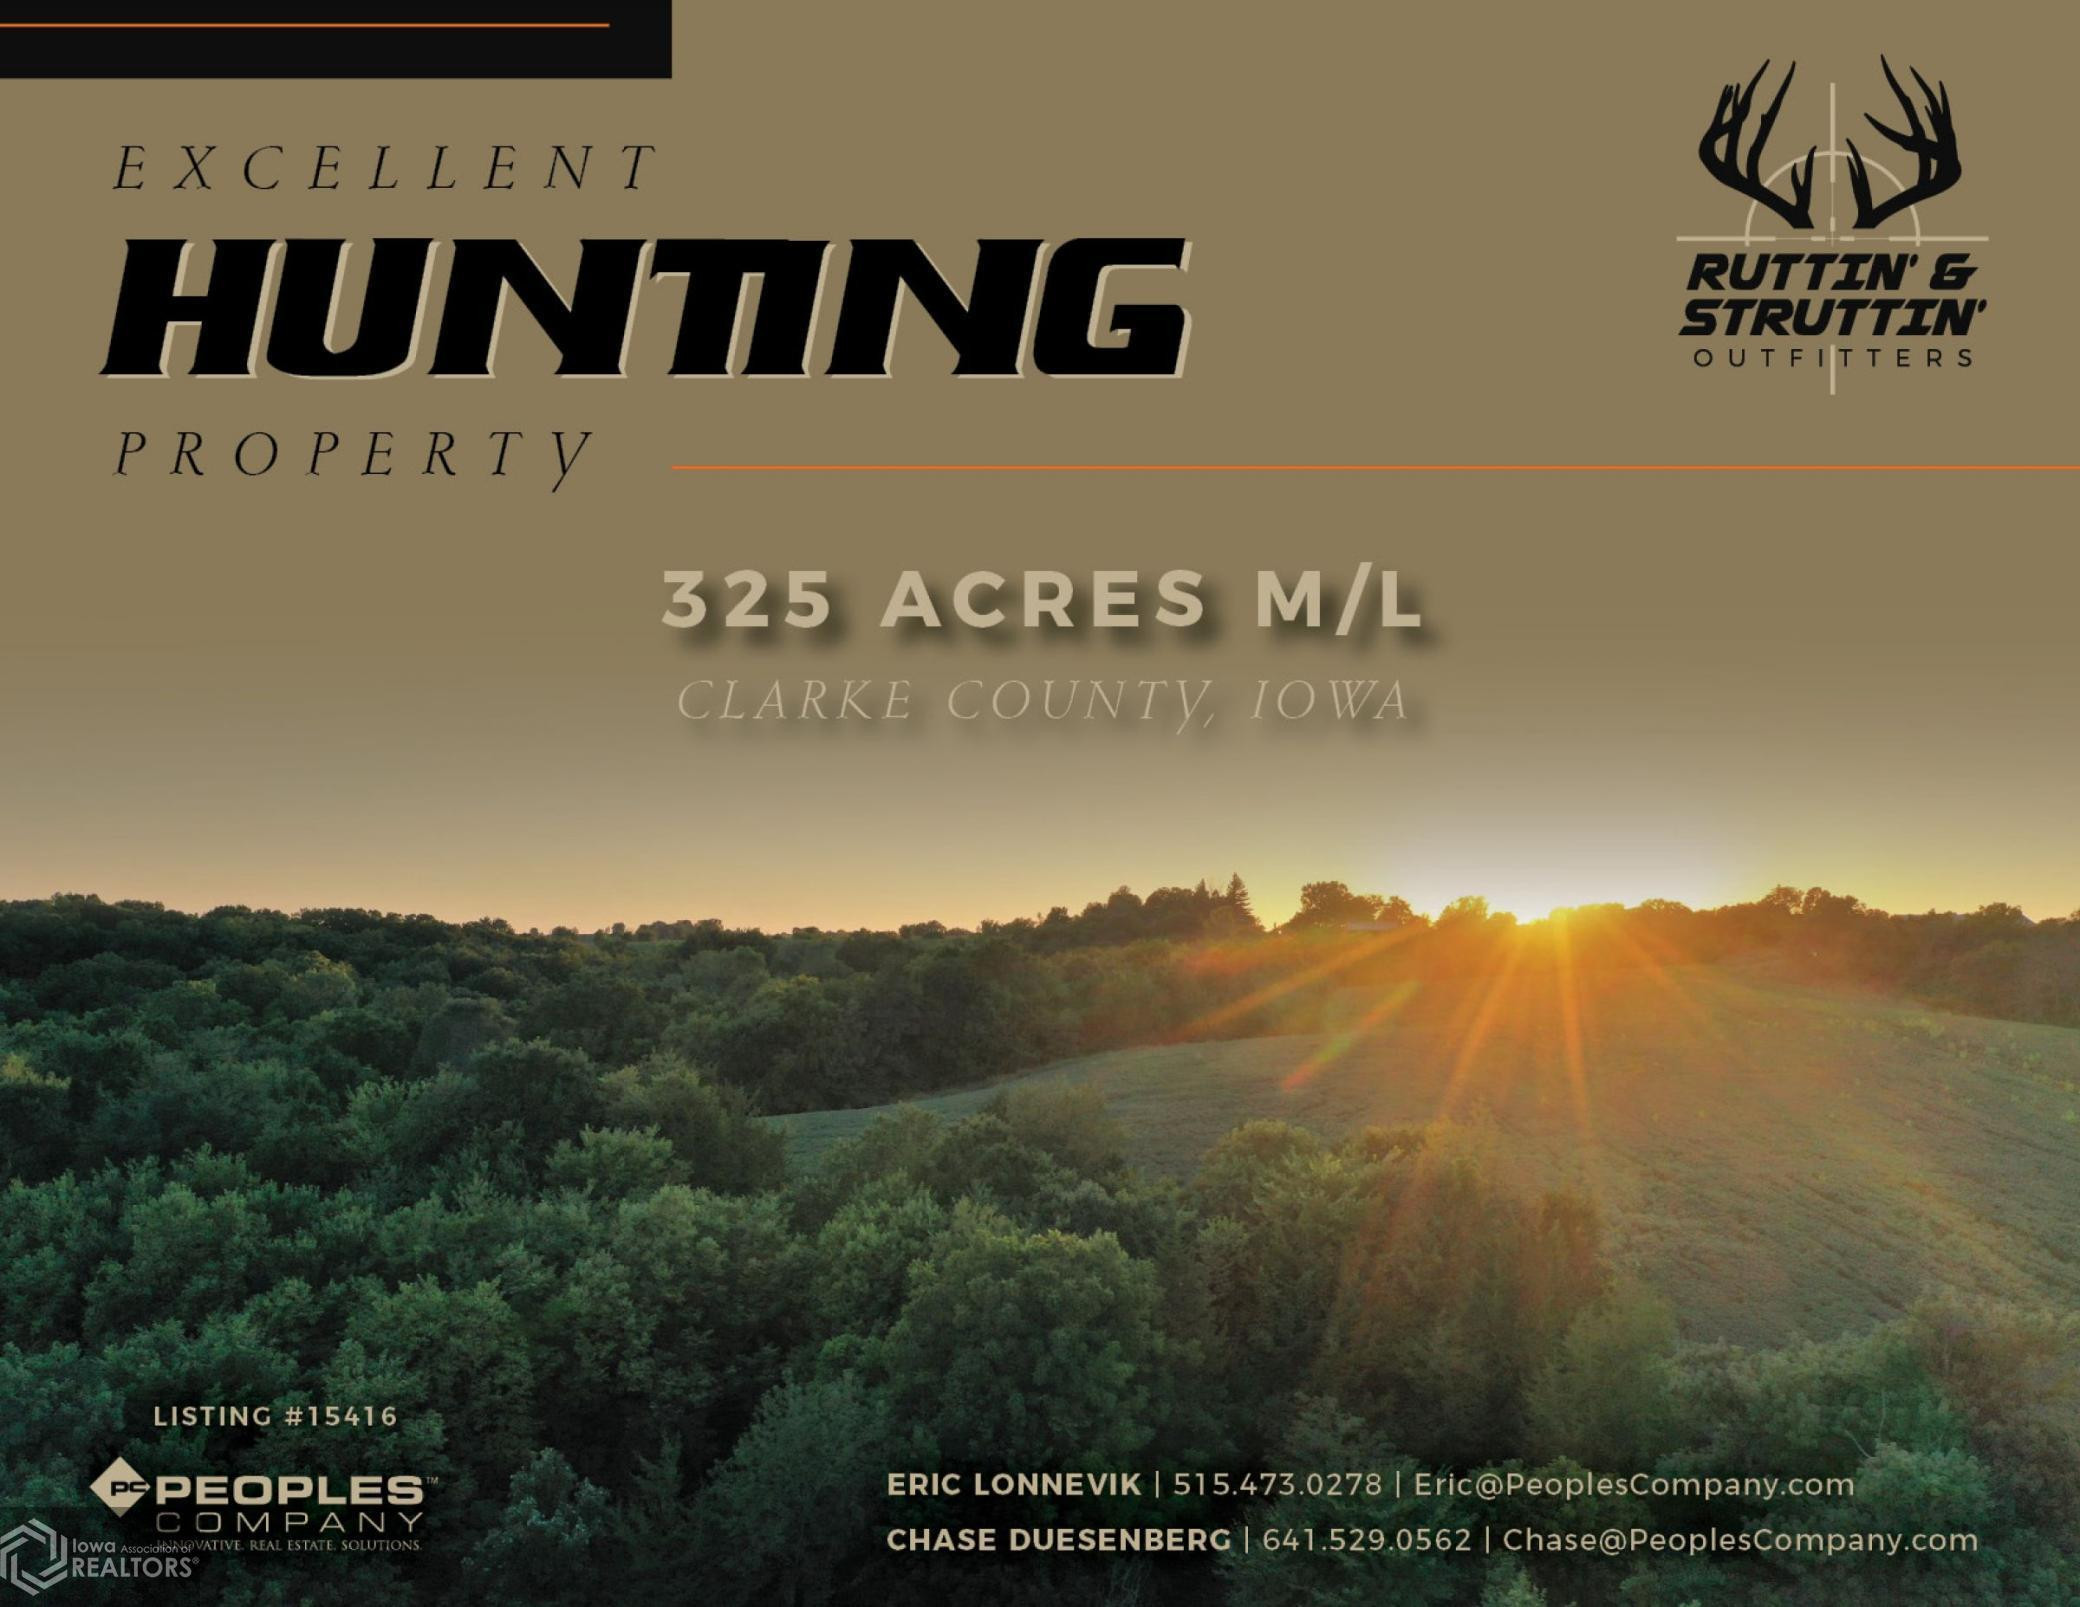 land-clarke-county-iowa-325-acres-listing-number-15416--2021-03-30-143144